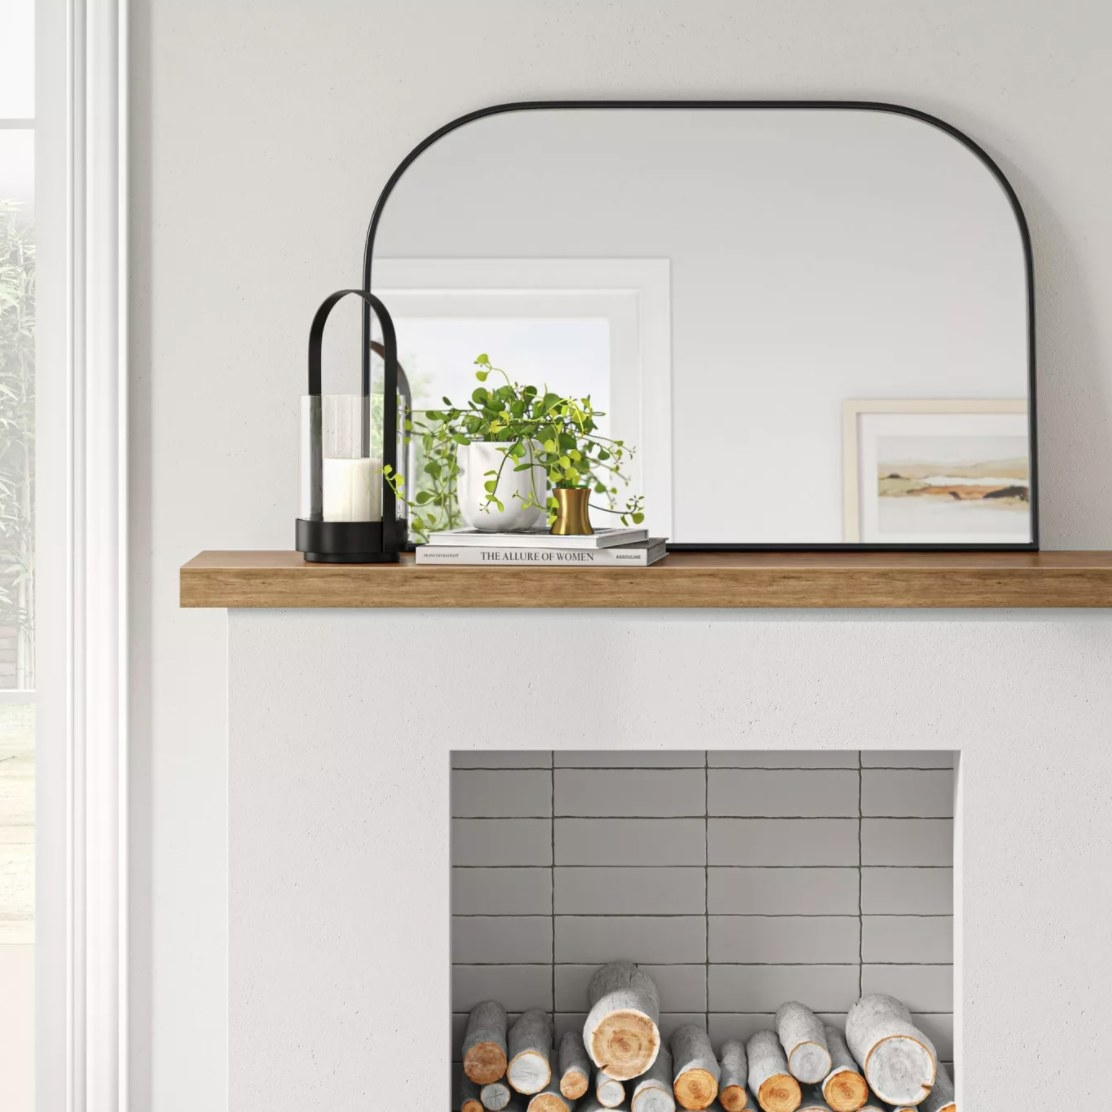 The arched mirror with a black frame